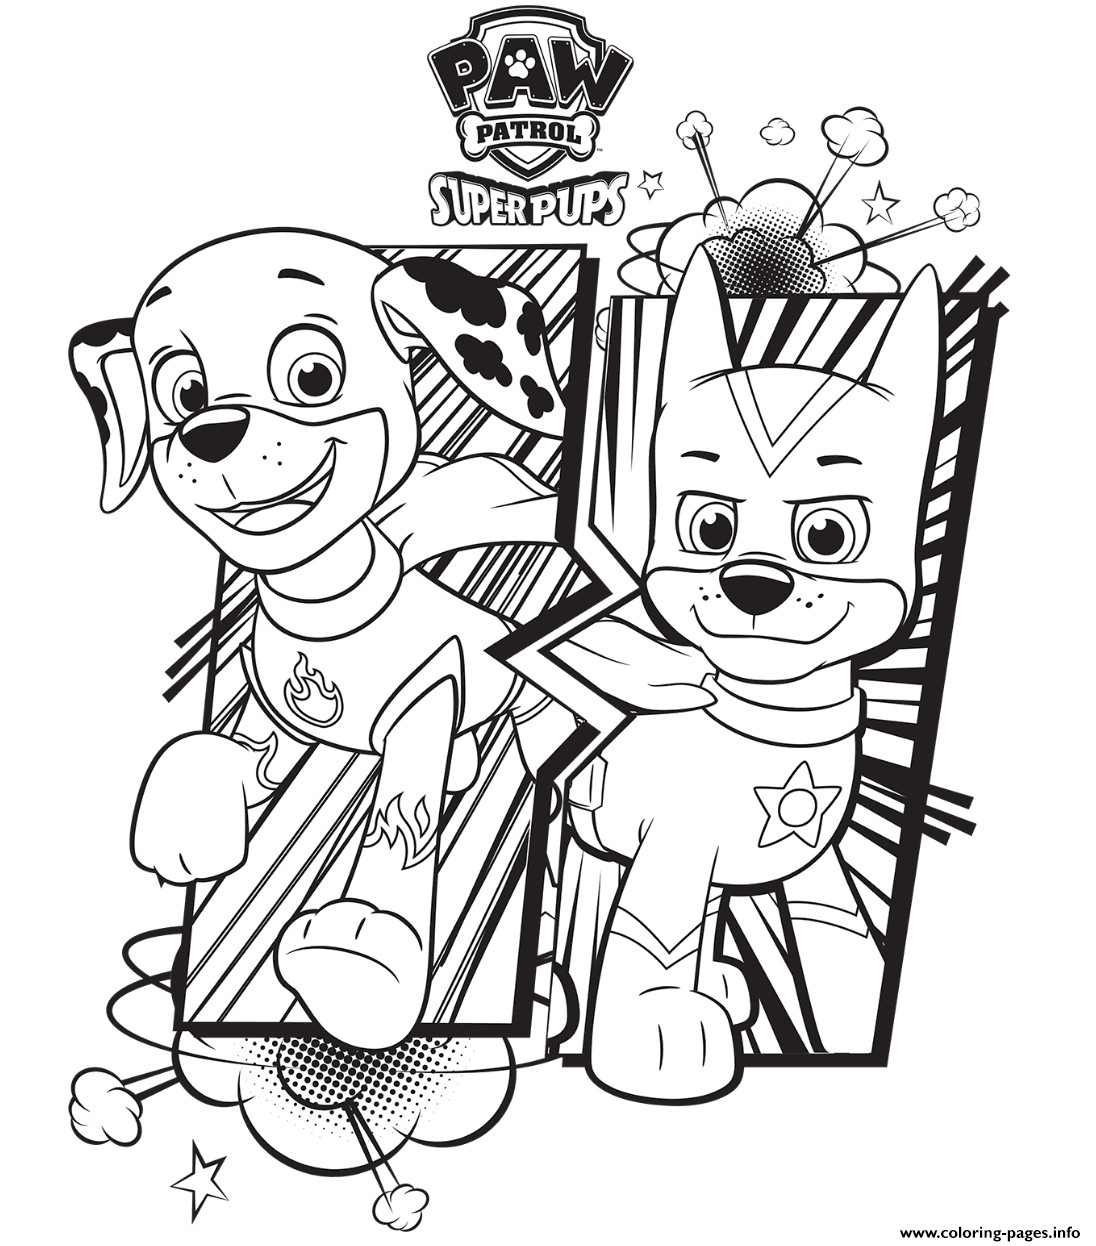 Mighty Pups Coloring Pages  FREE PAW Patrol Coloring Pages Happiness is Homemade